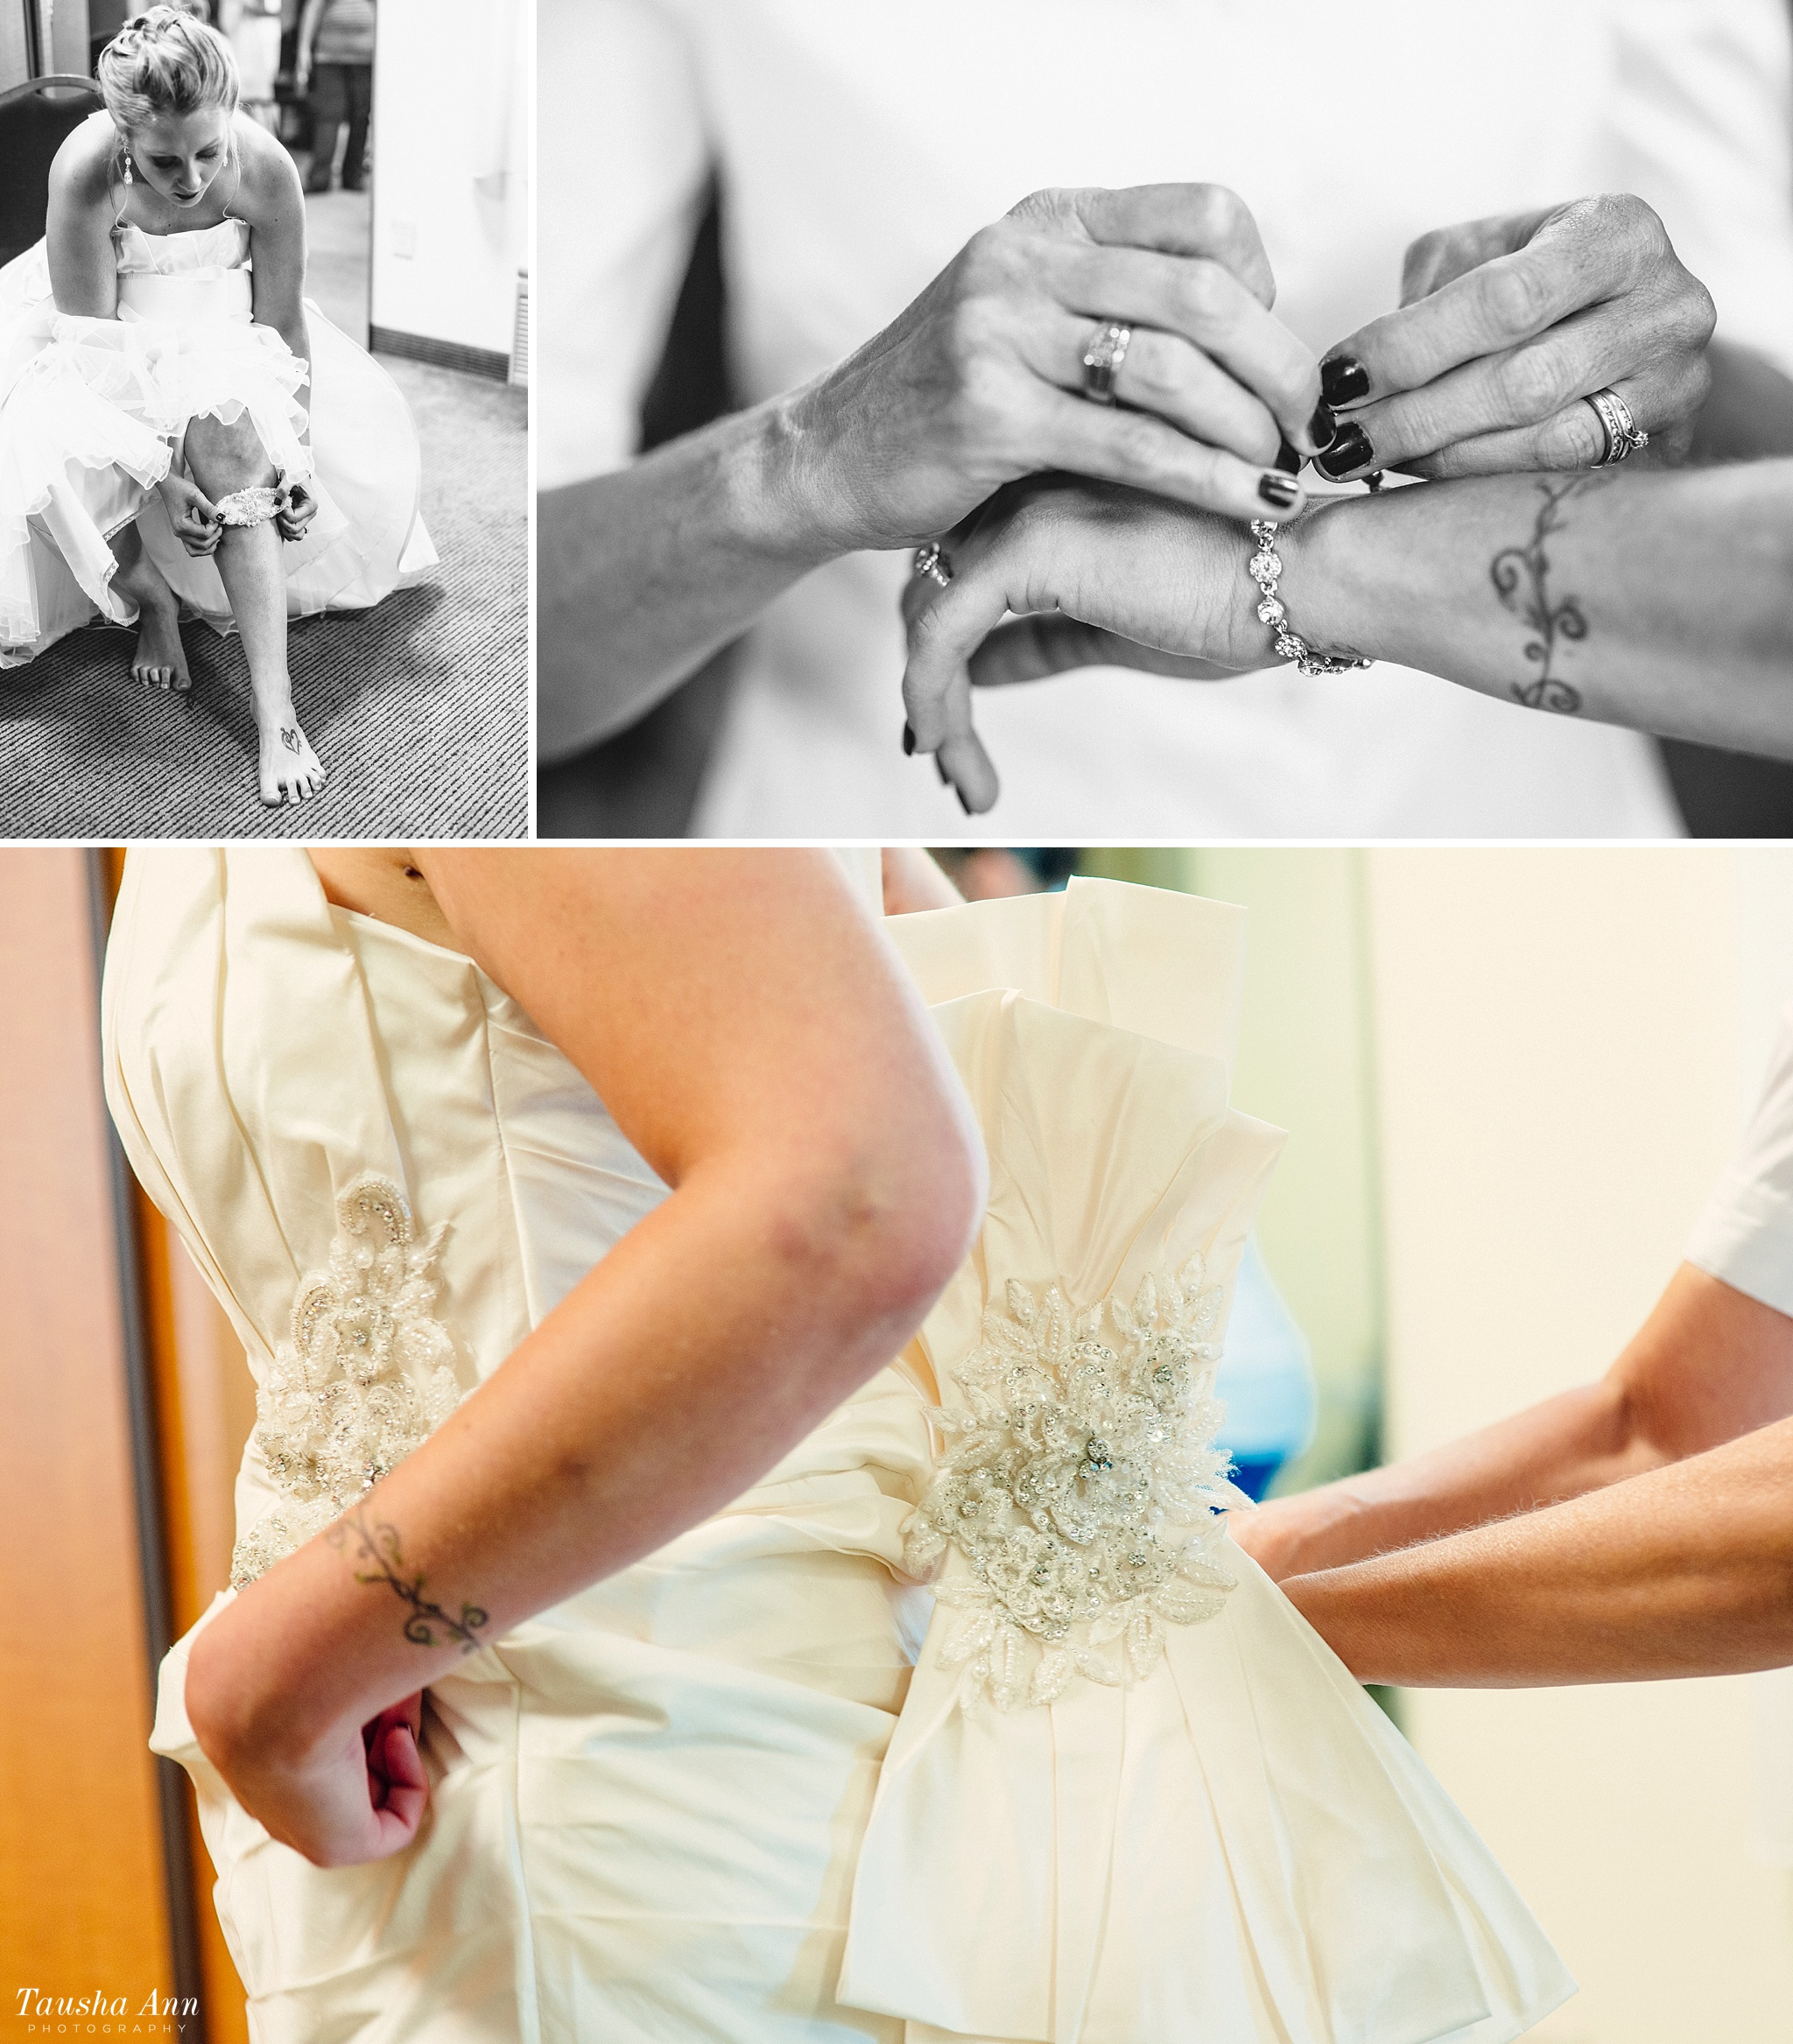 Detail images of final touches of bride and wedding dress. Putting on bracelet. Bride putting garter on leg.